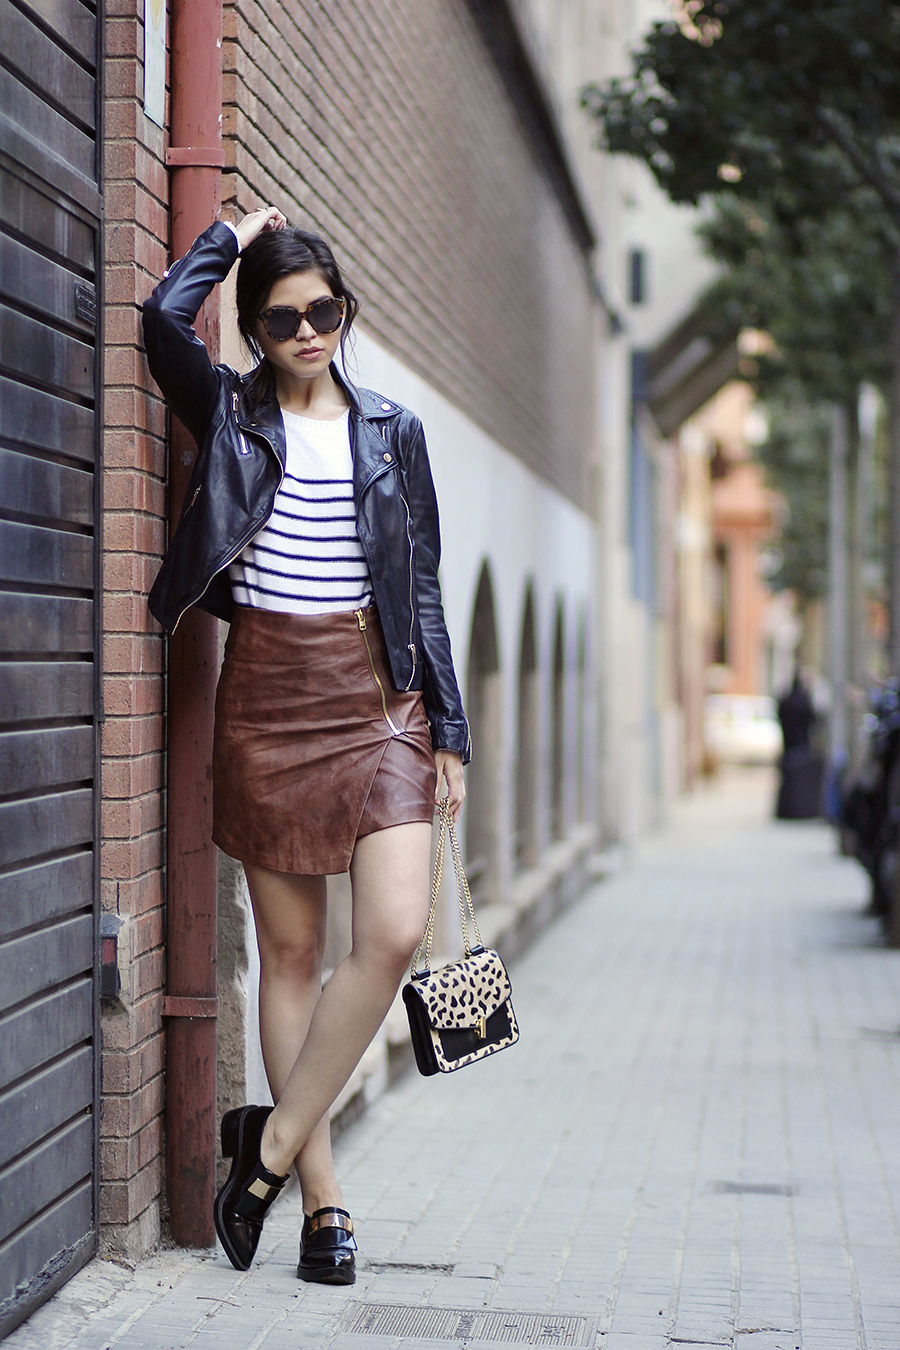 03 stradivarius leather jacket spring hm faux leather tan wrap skirt zara metallic loafers reiss elliot leopard bag striped knit karen walker number one sunglasses ootd1 84d9c